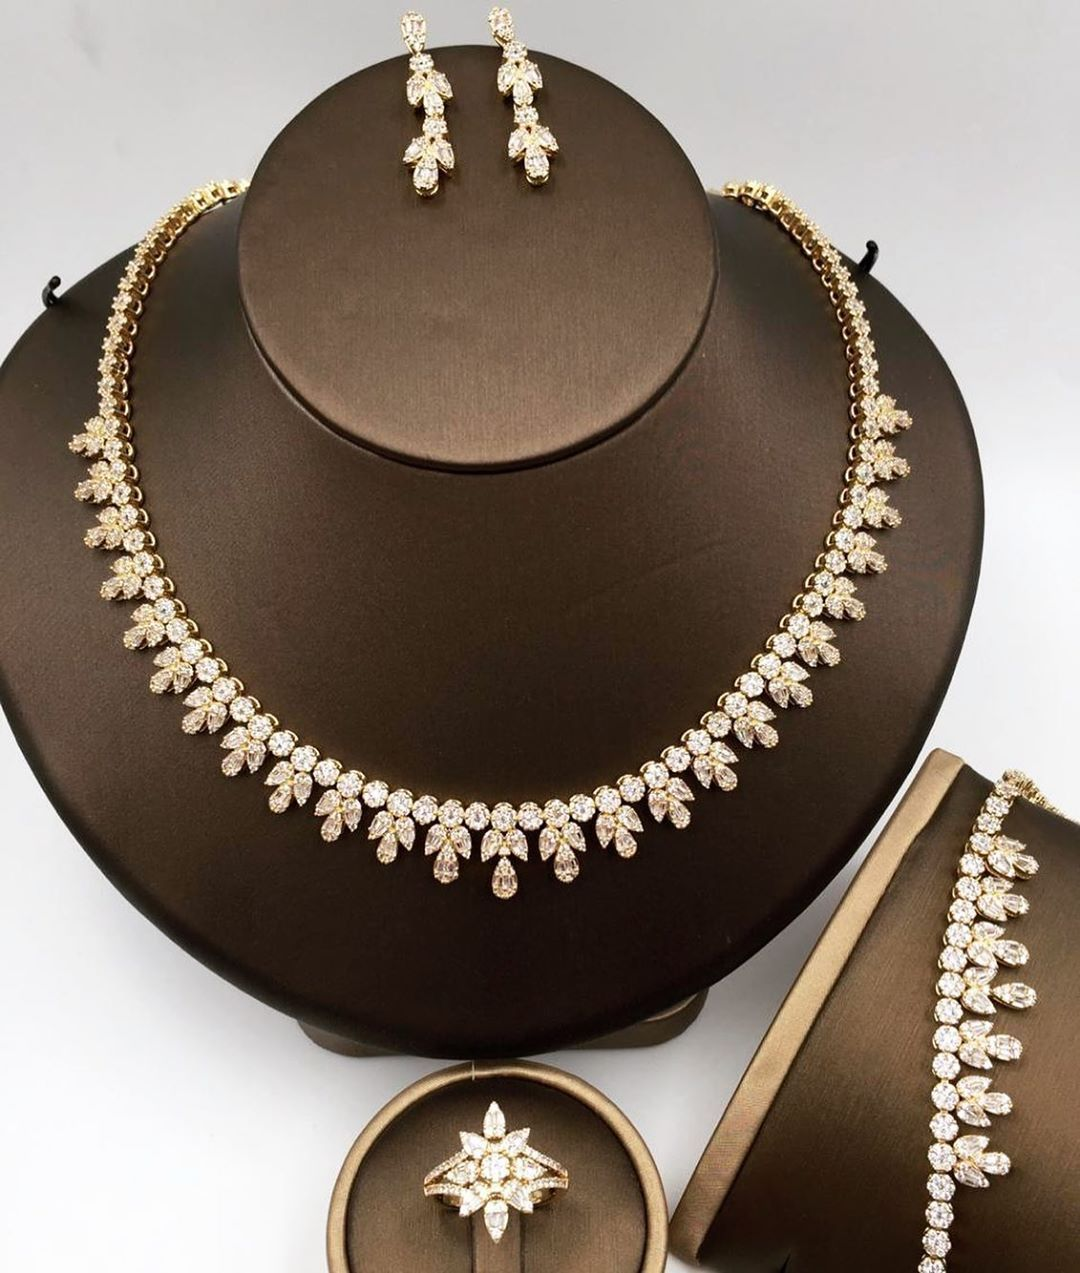 Pin By Seedra On اكسسوارات عروس Statement Necklace Jewelry Diamond Necklace